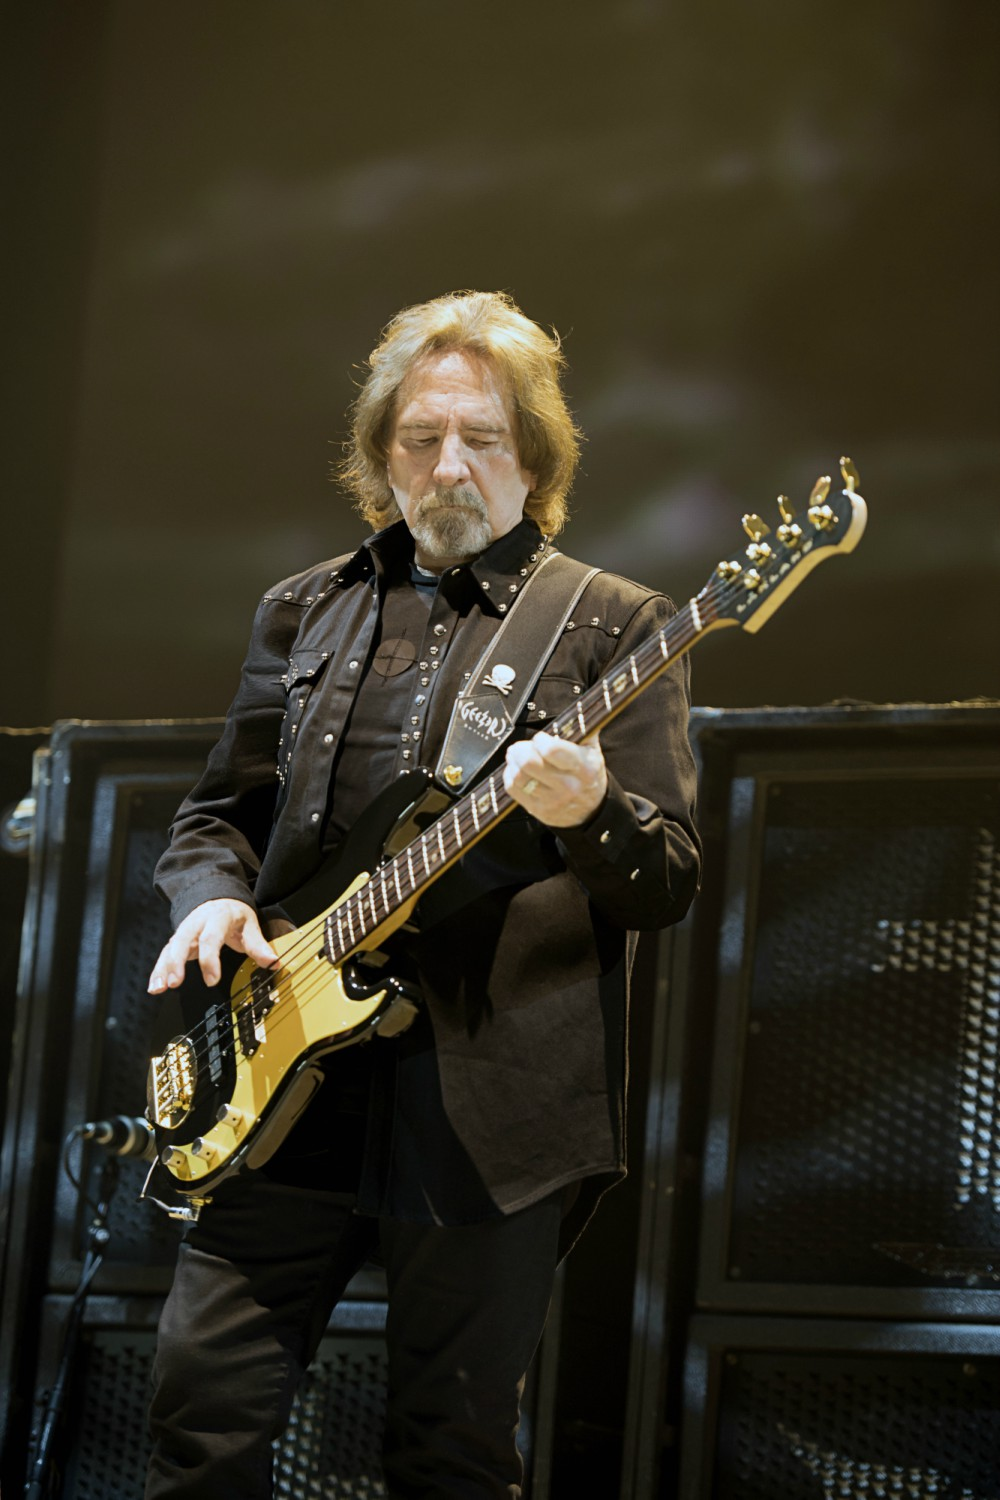 Batemos um papo com Geezer Butler, do Black Sabbath